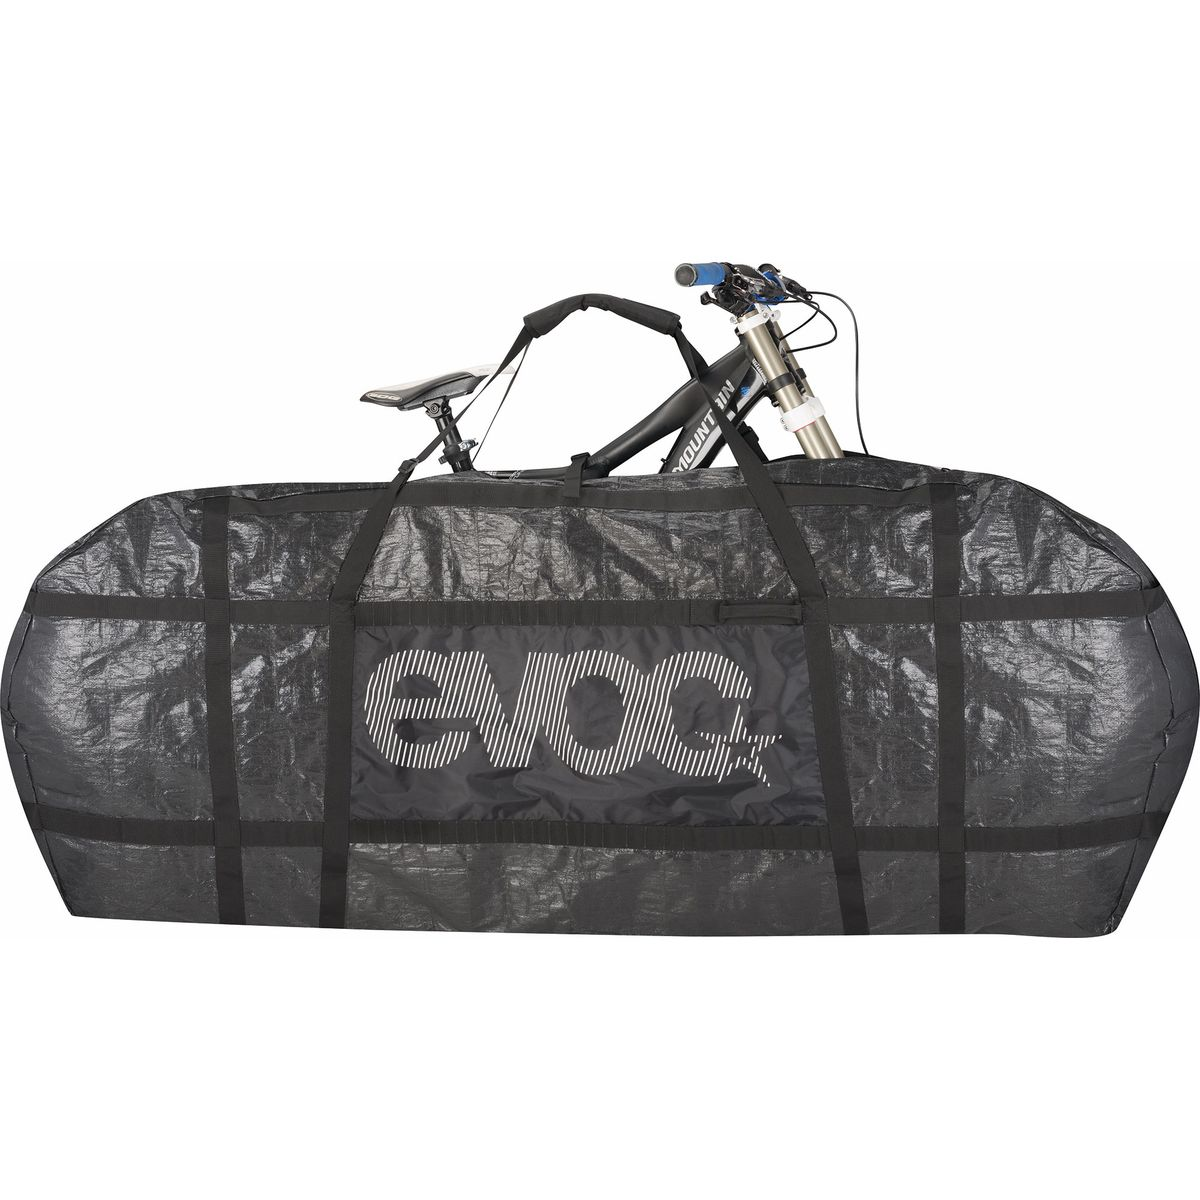 evoc BIKE TRAVEL COVER transport bag | Cykelkuffert